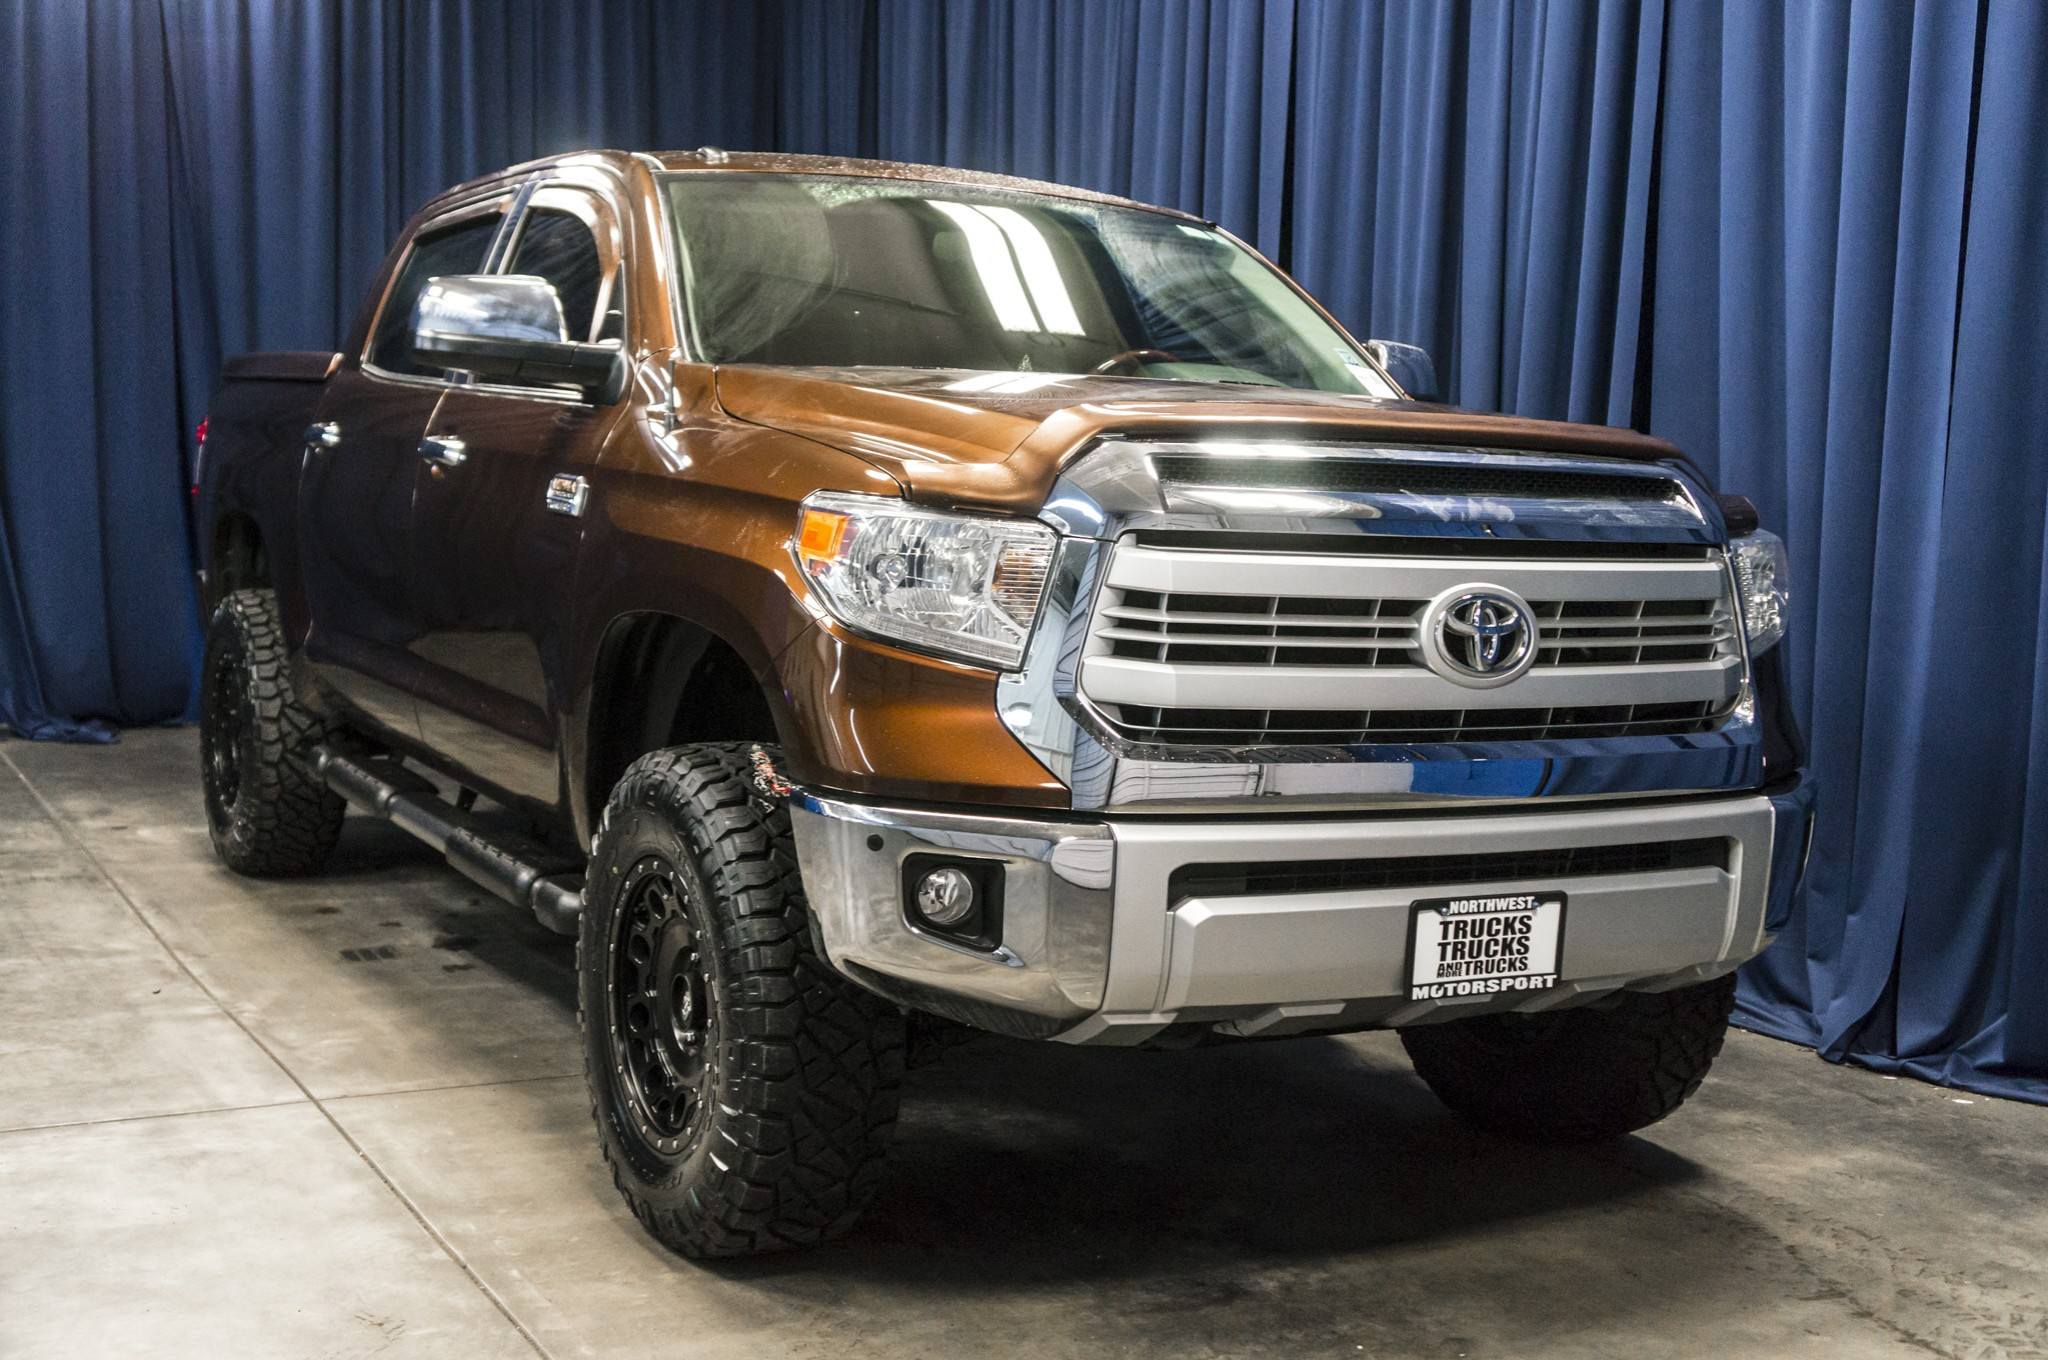 used lifted 2014 toyota tundra 1794 edition 4x4 truck for. Black Bedroom Furniture Sets. Home Design Ideas